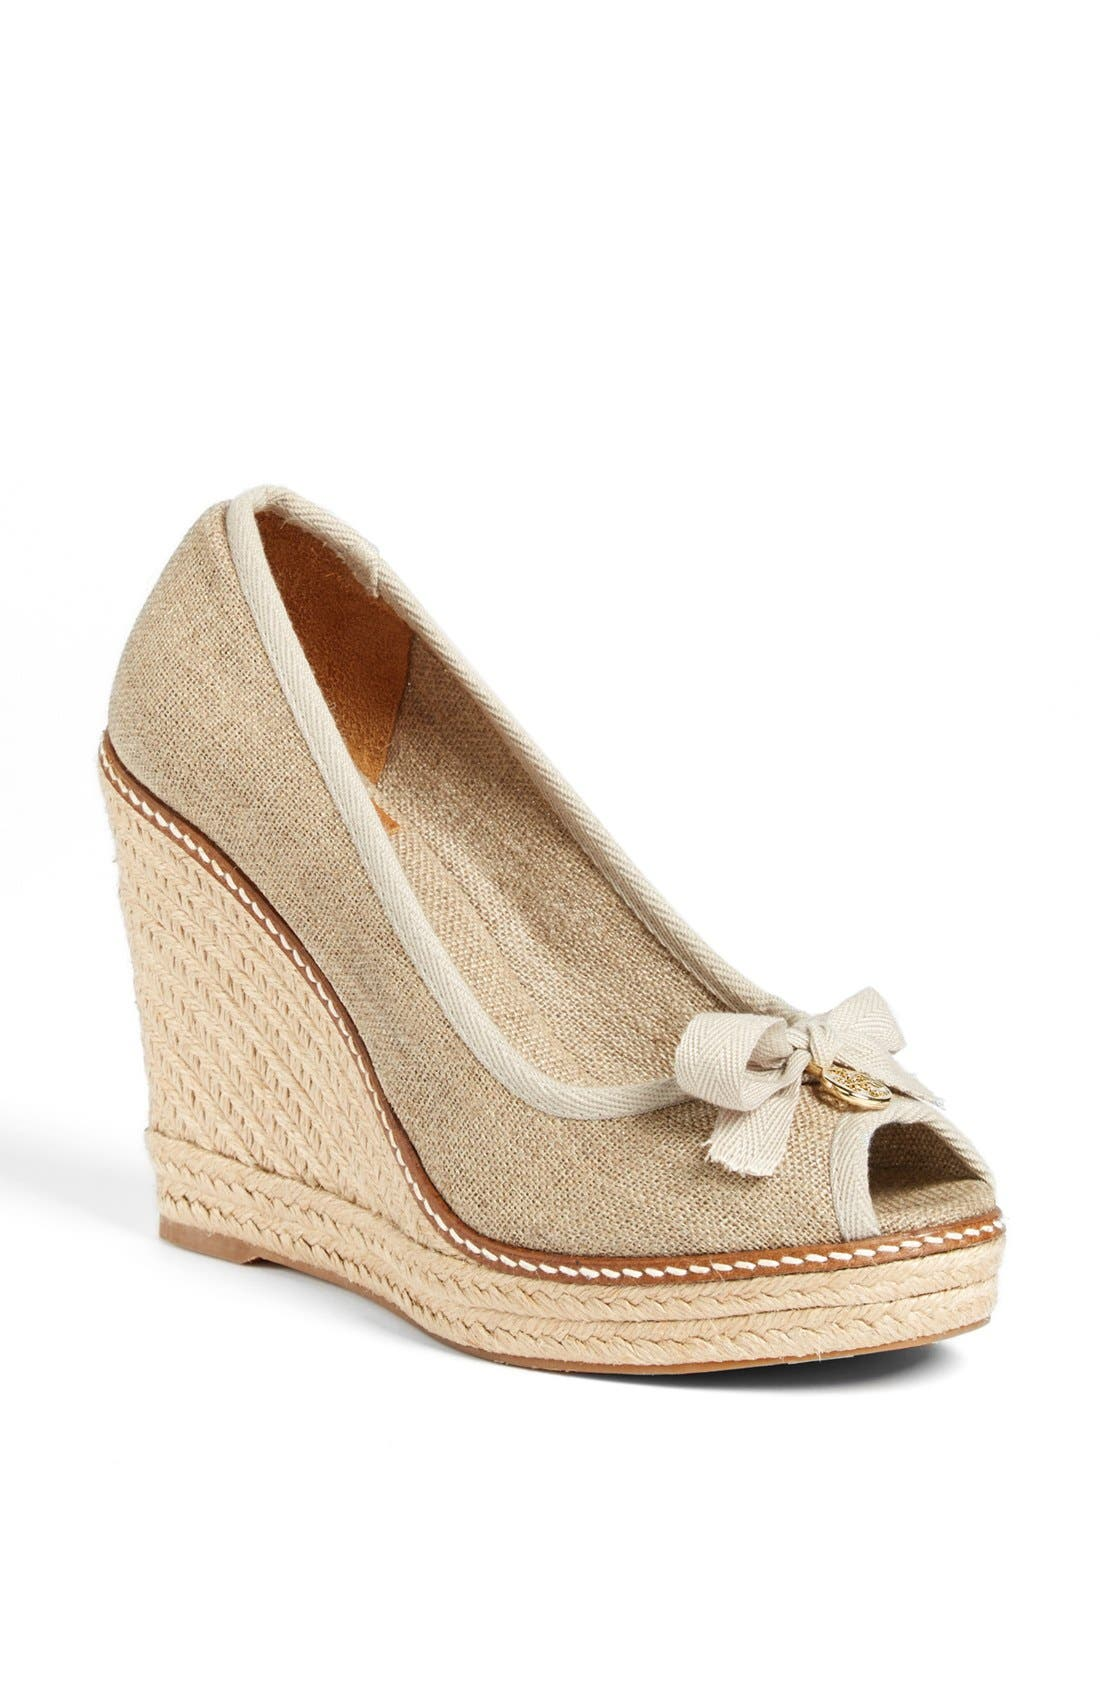 Alternate Image 1 Selected - Tory Burch 'Jackie' Espadrille Wedge